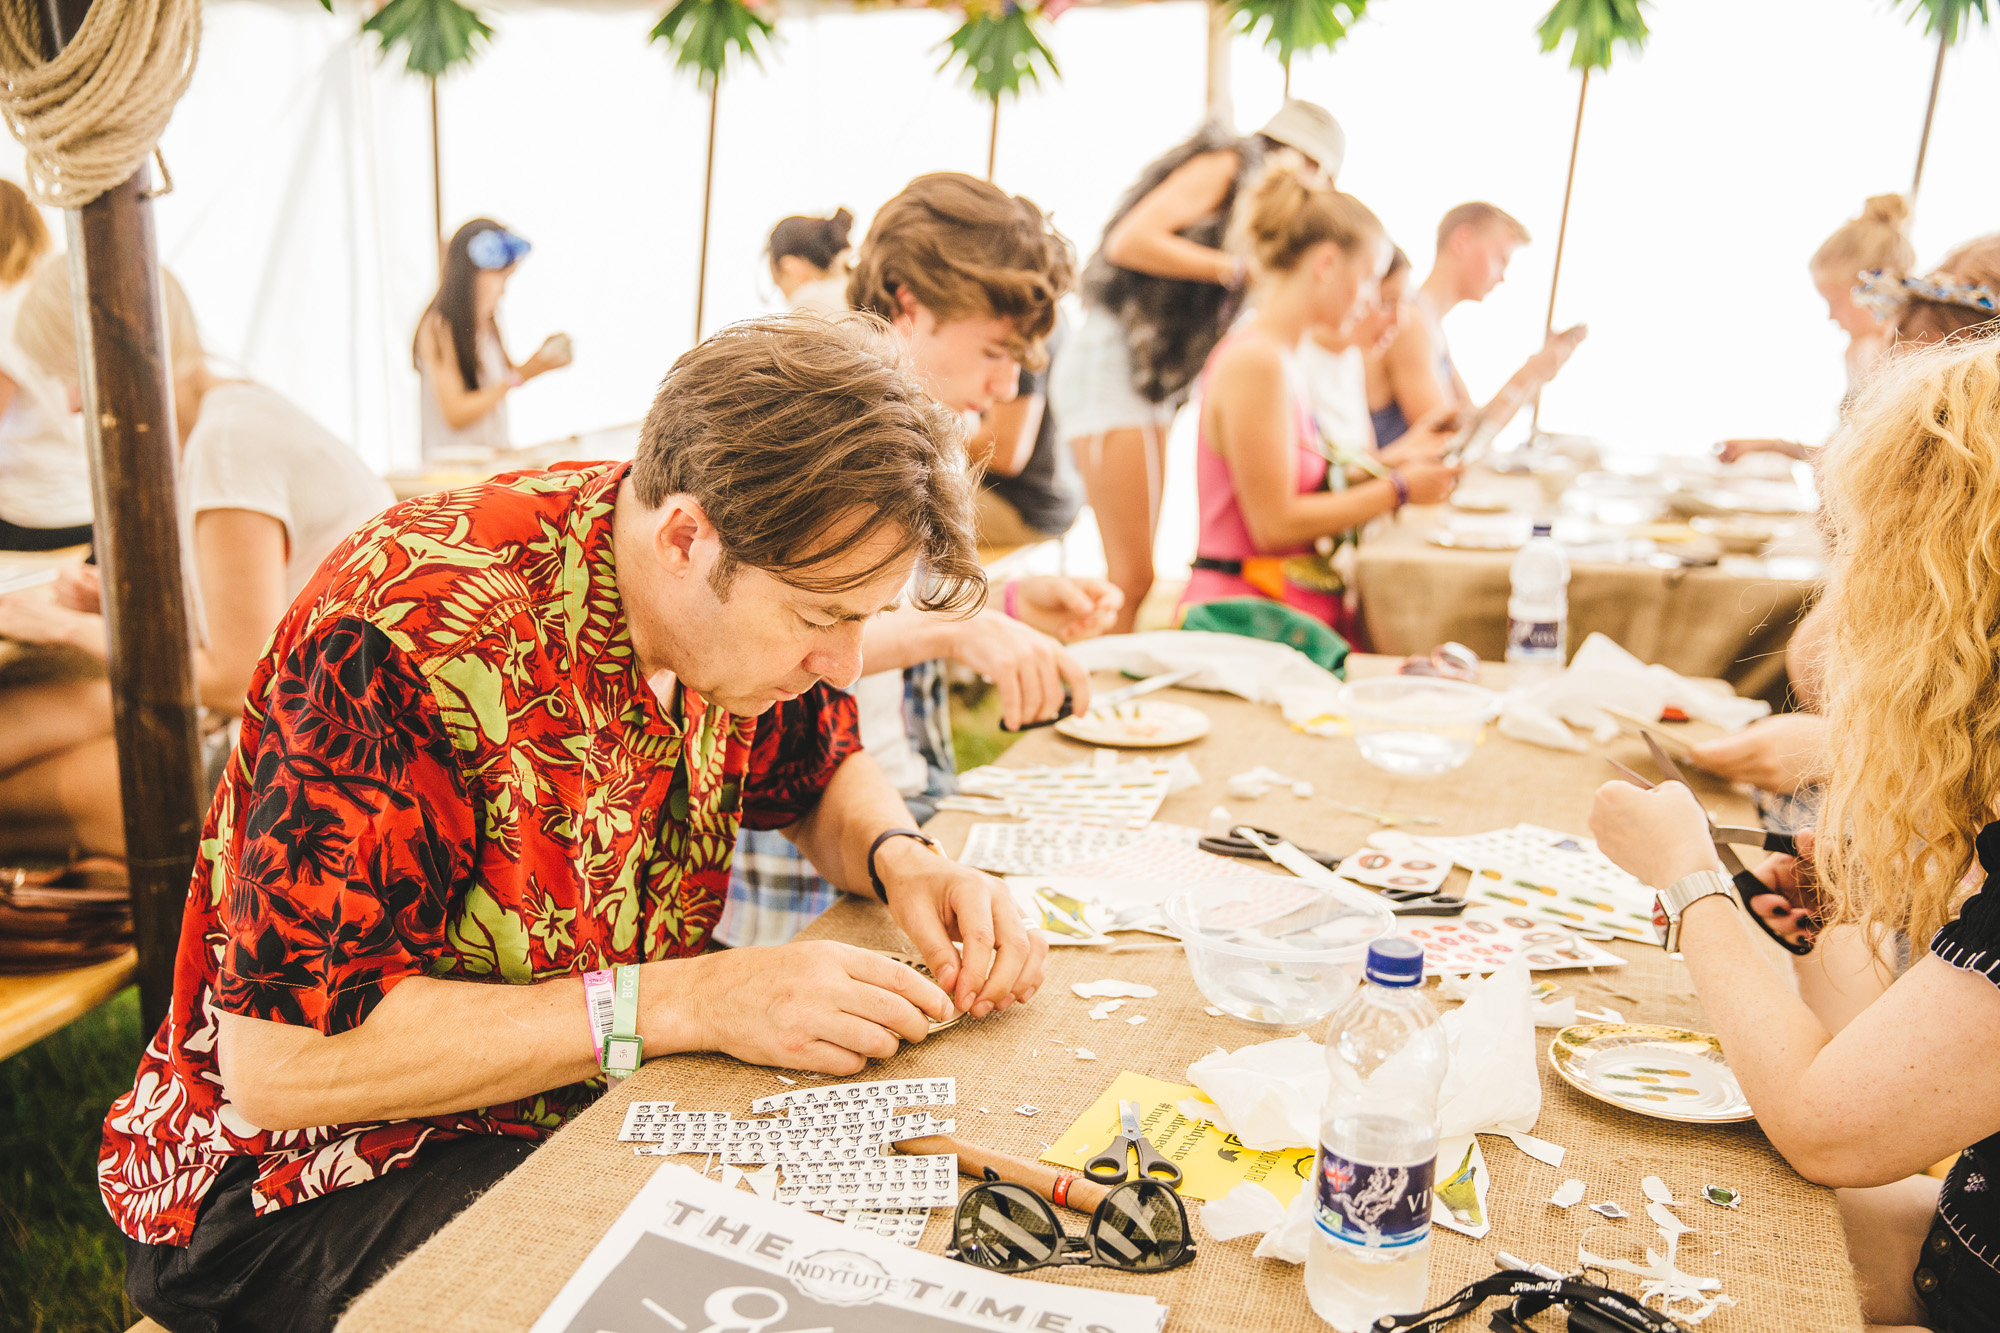 Event review Wilderness Festival 2015 - crafts